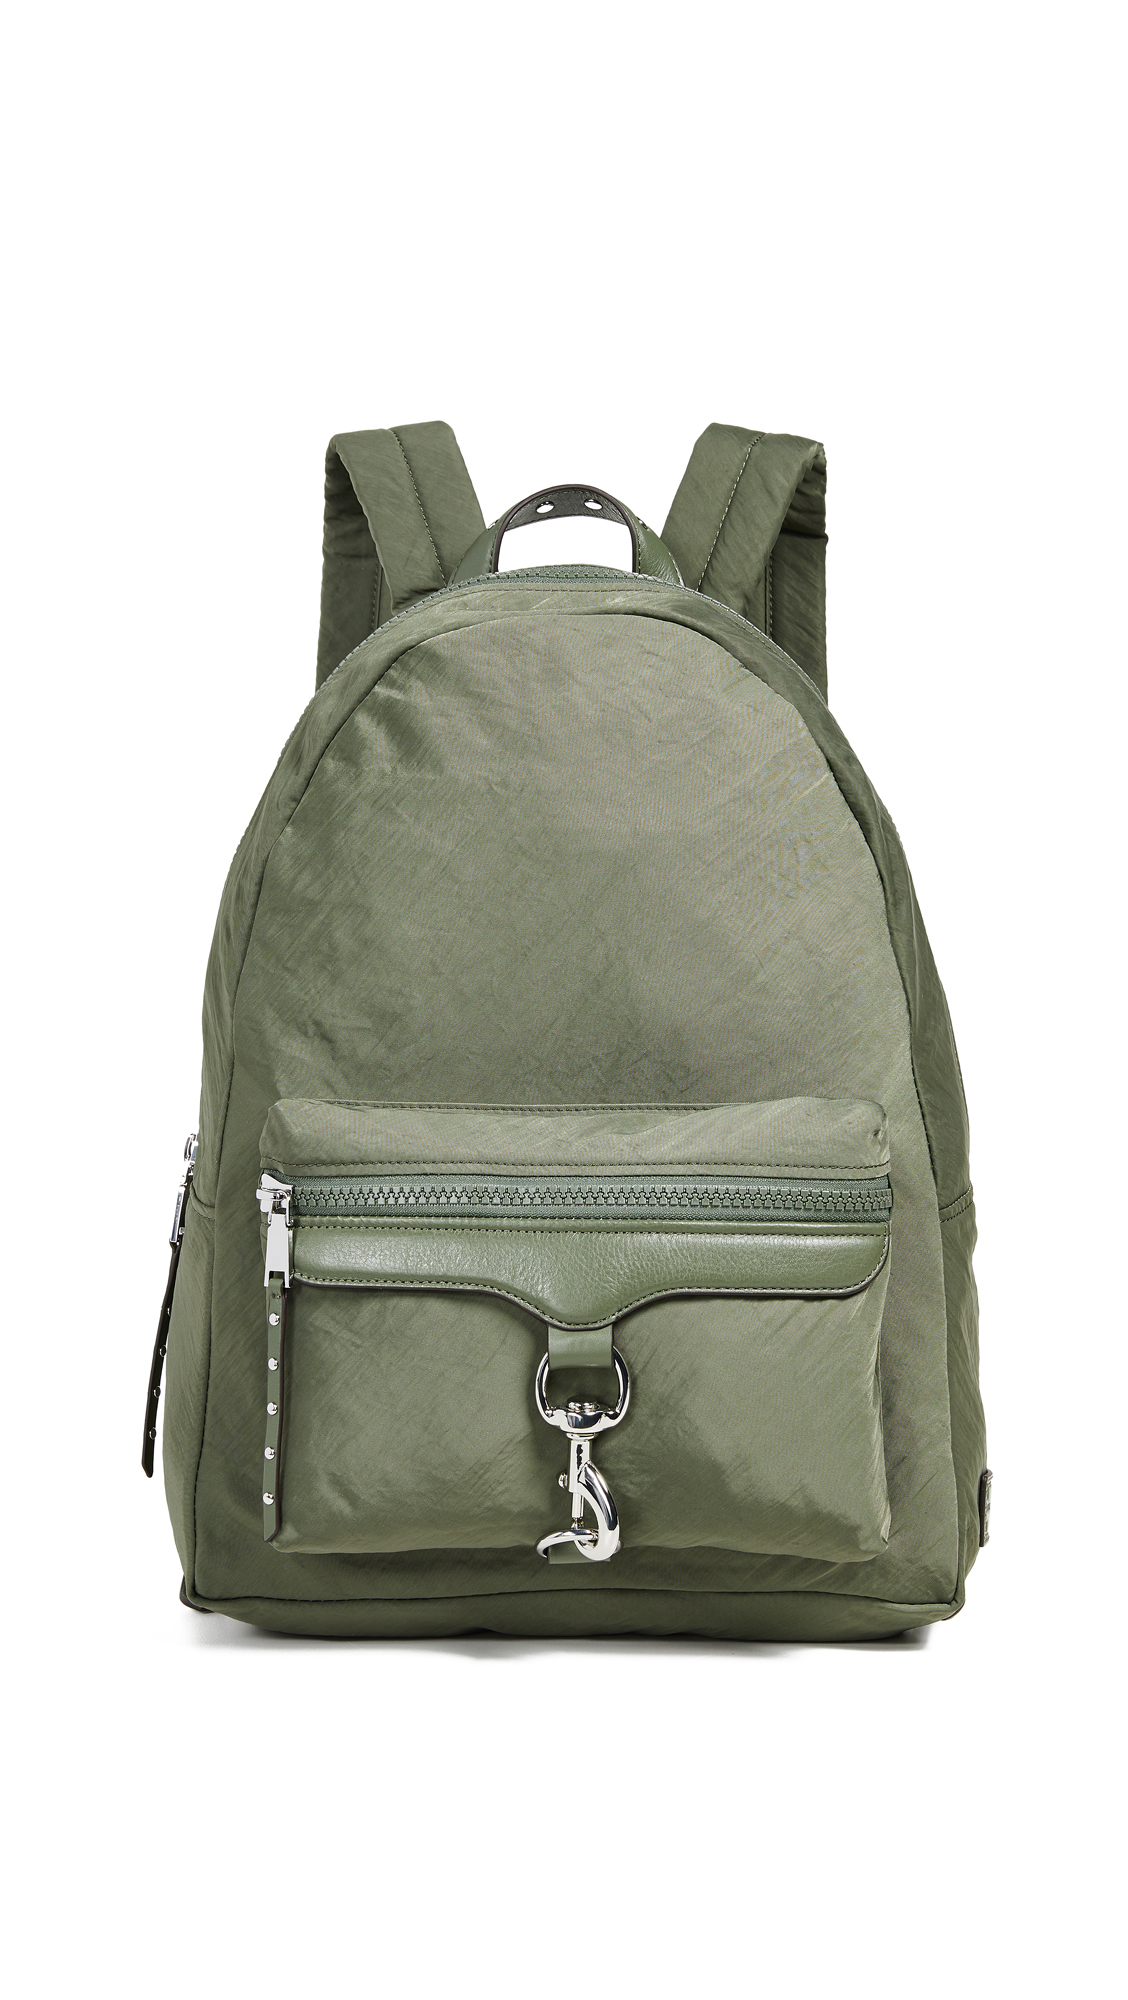 ALWAYS ON MAB BACKPACK from Shopbop